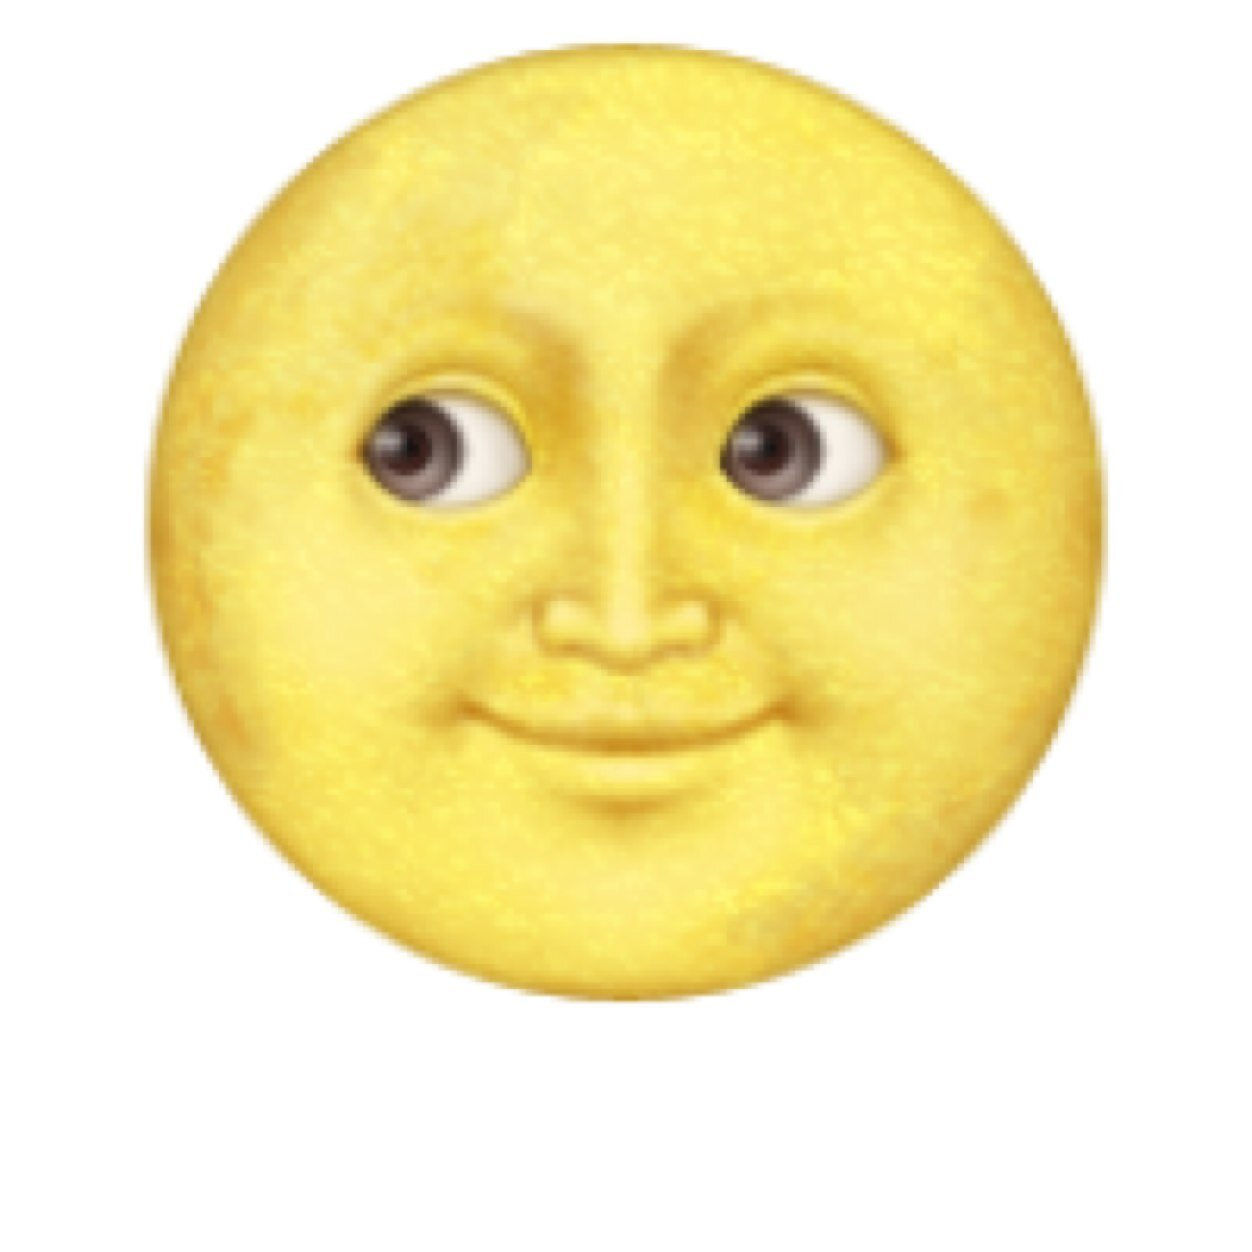 yellow moon emoji - photo #1